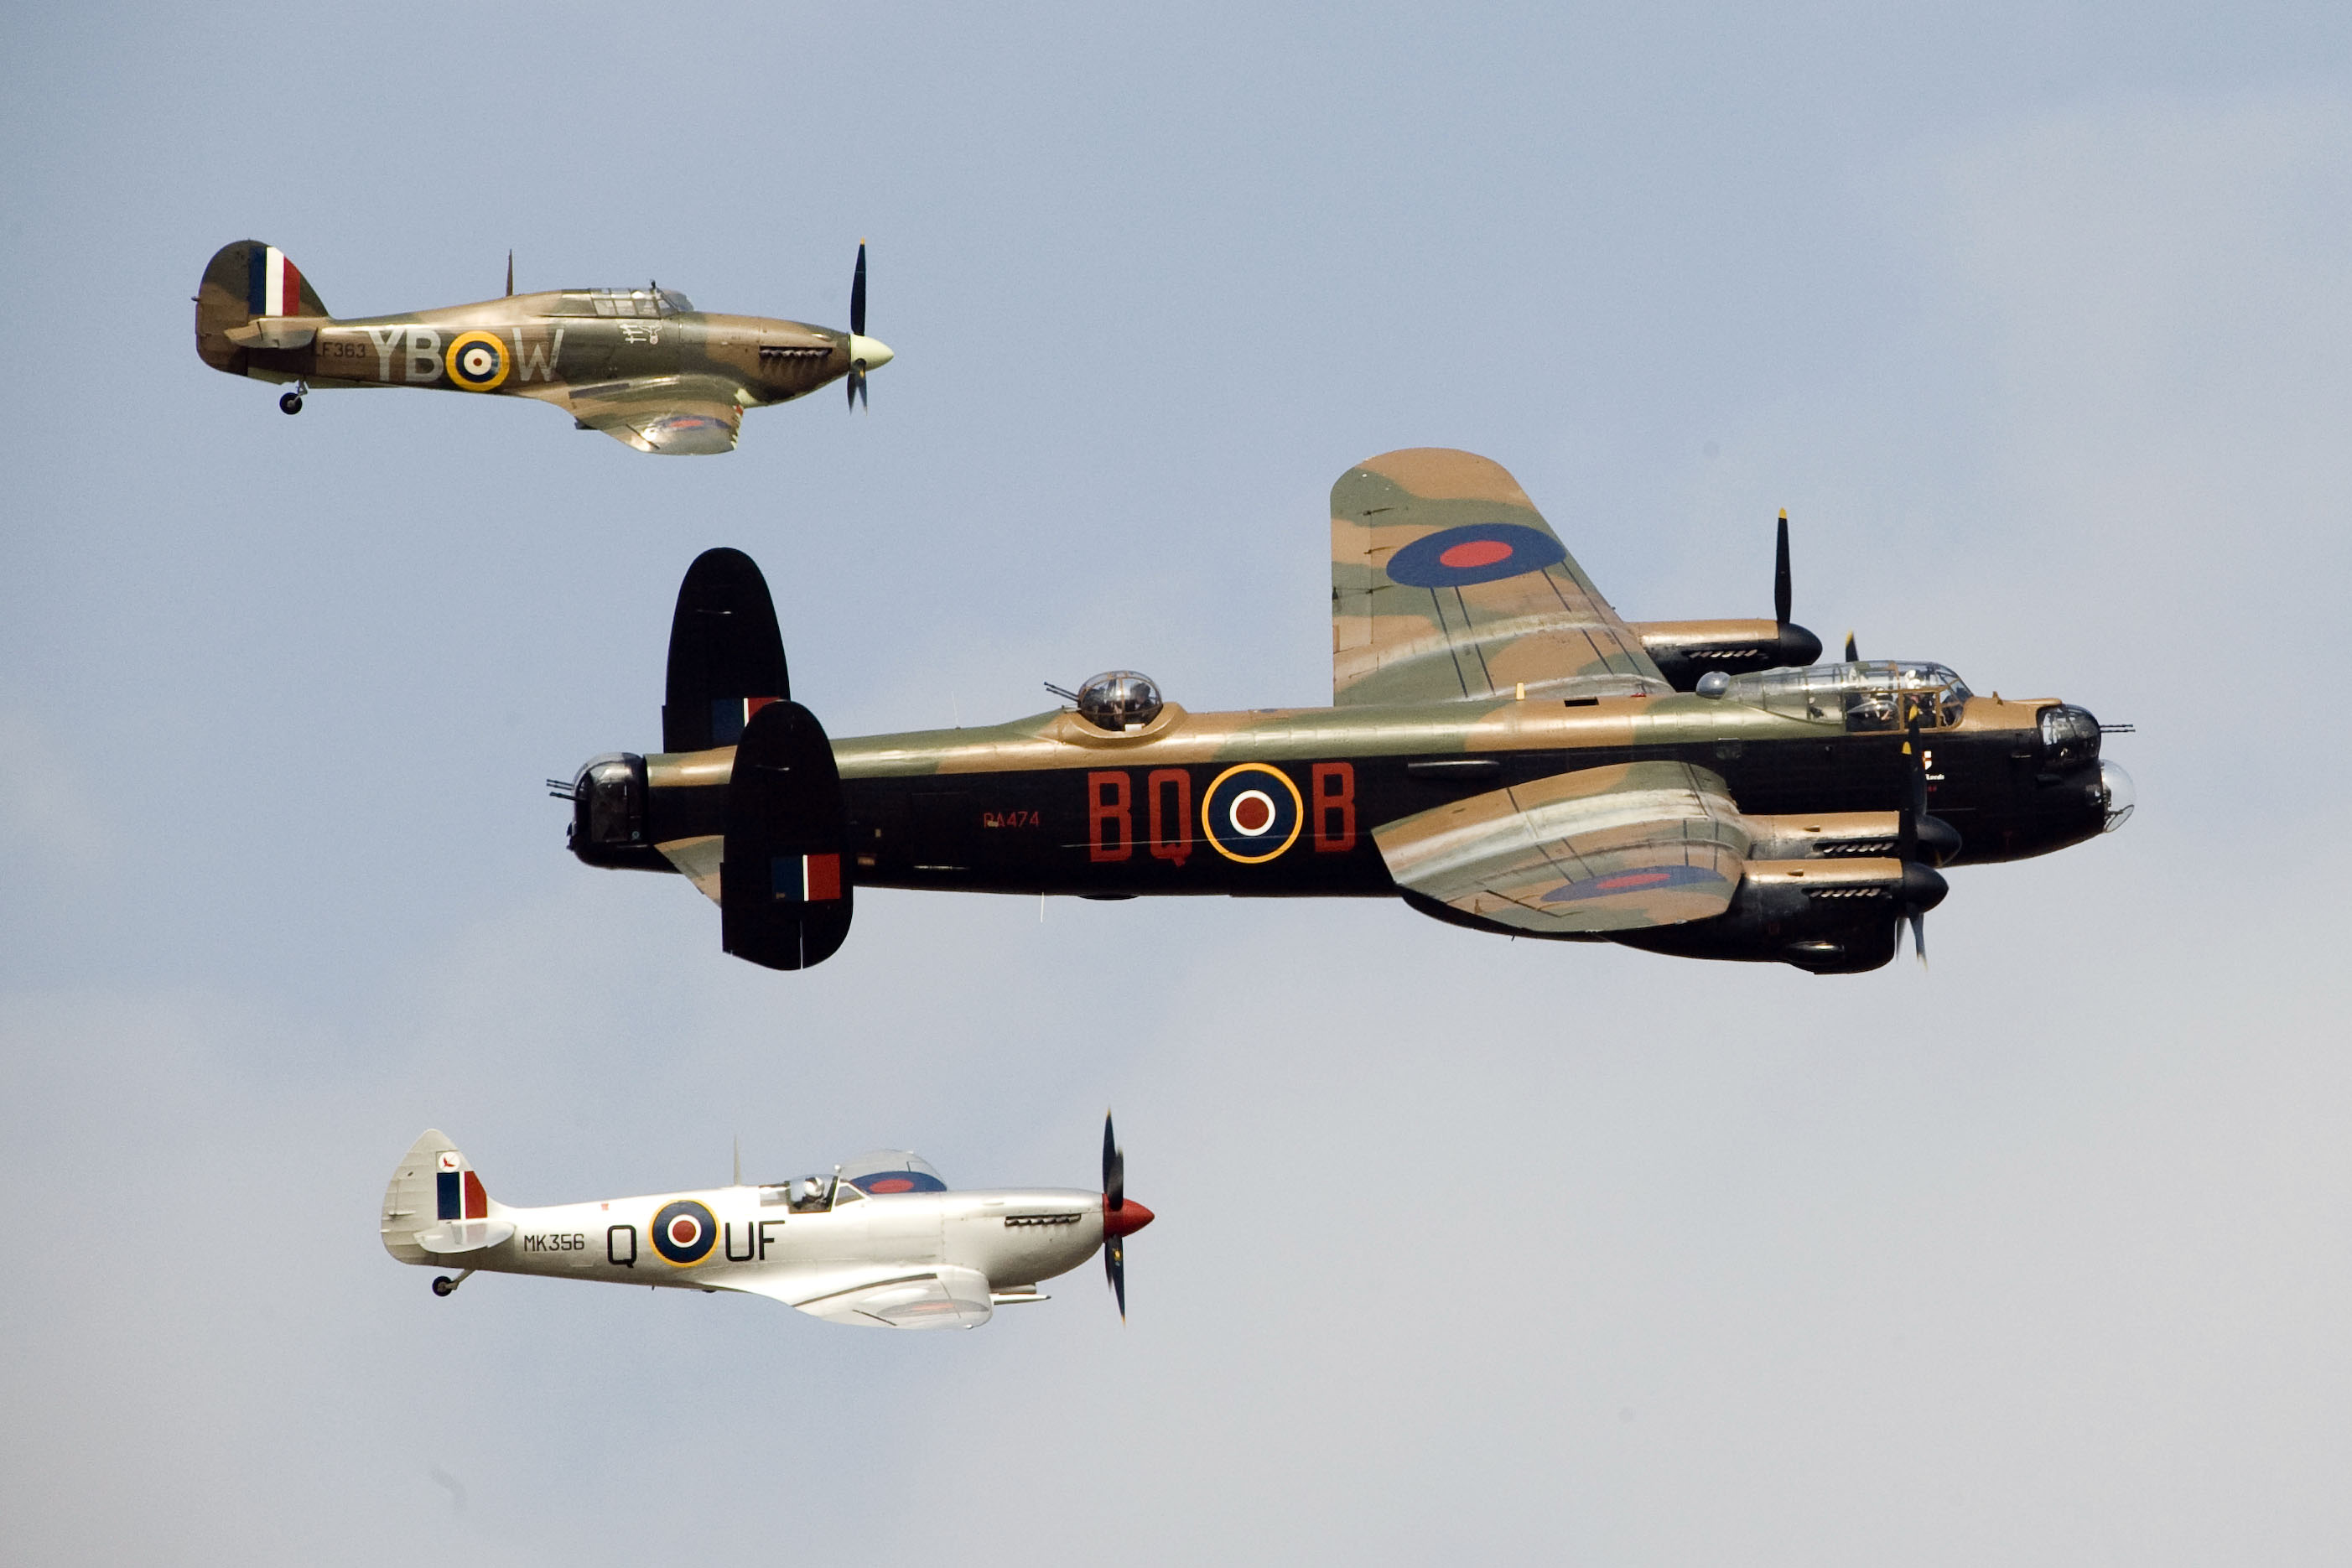 War Birds in the skies over the Revival